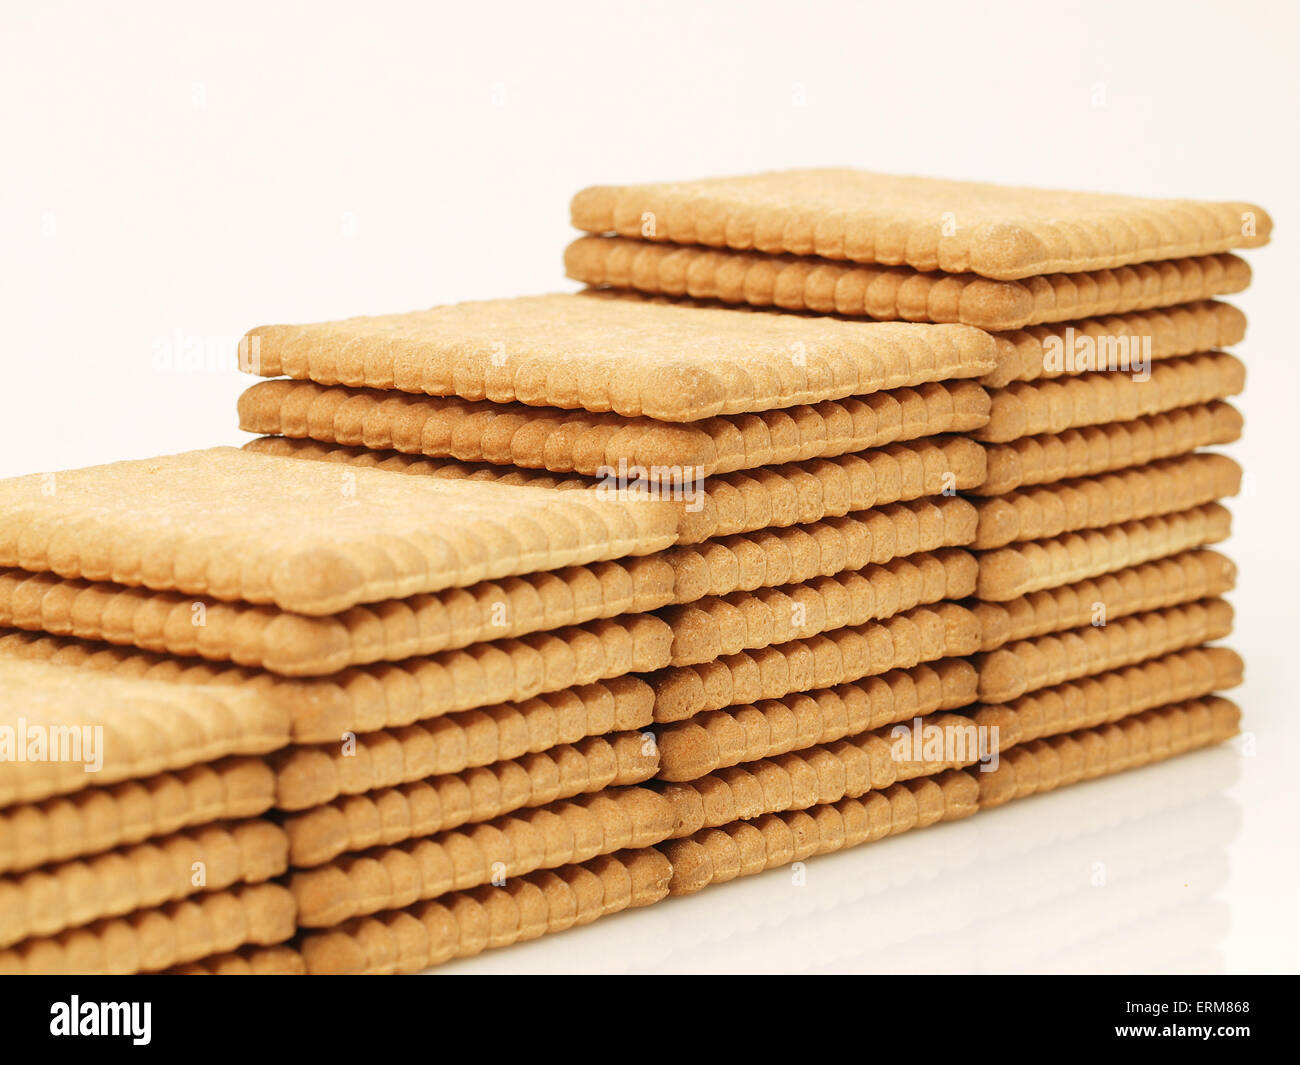 Tasty biscuits background - Stock Image